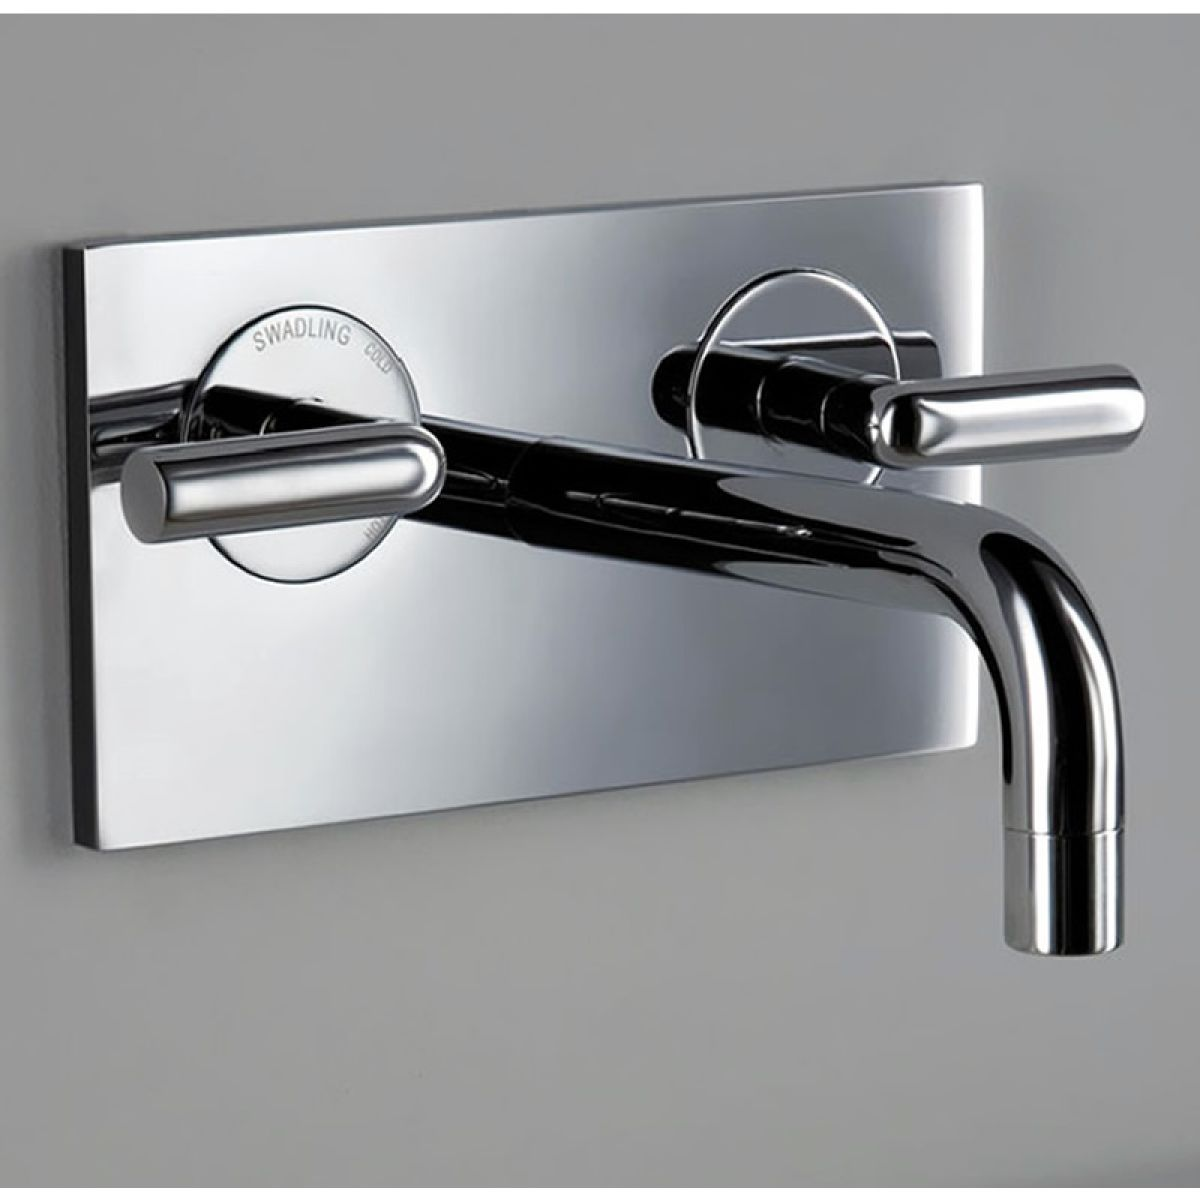 Matki Swadling New Absolute 2 Contemporary Wall Bath Mixer